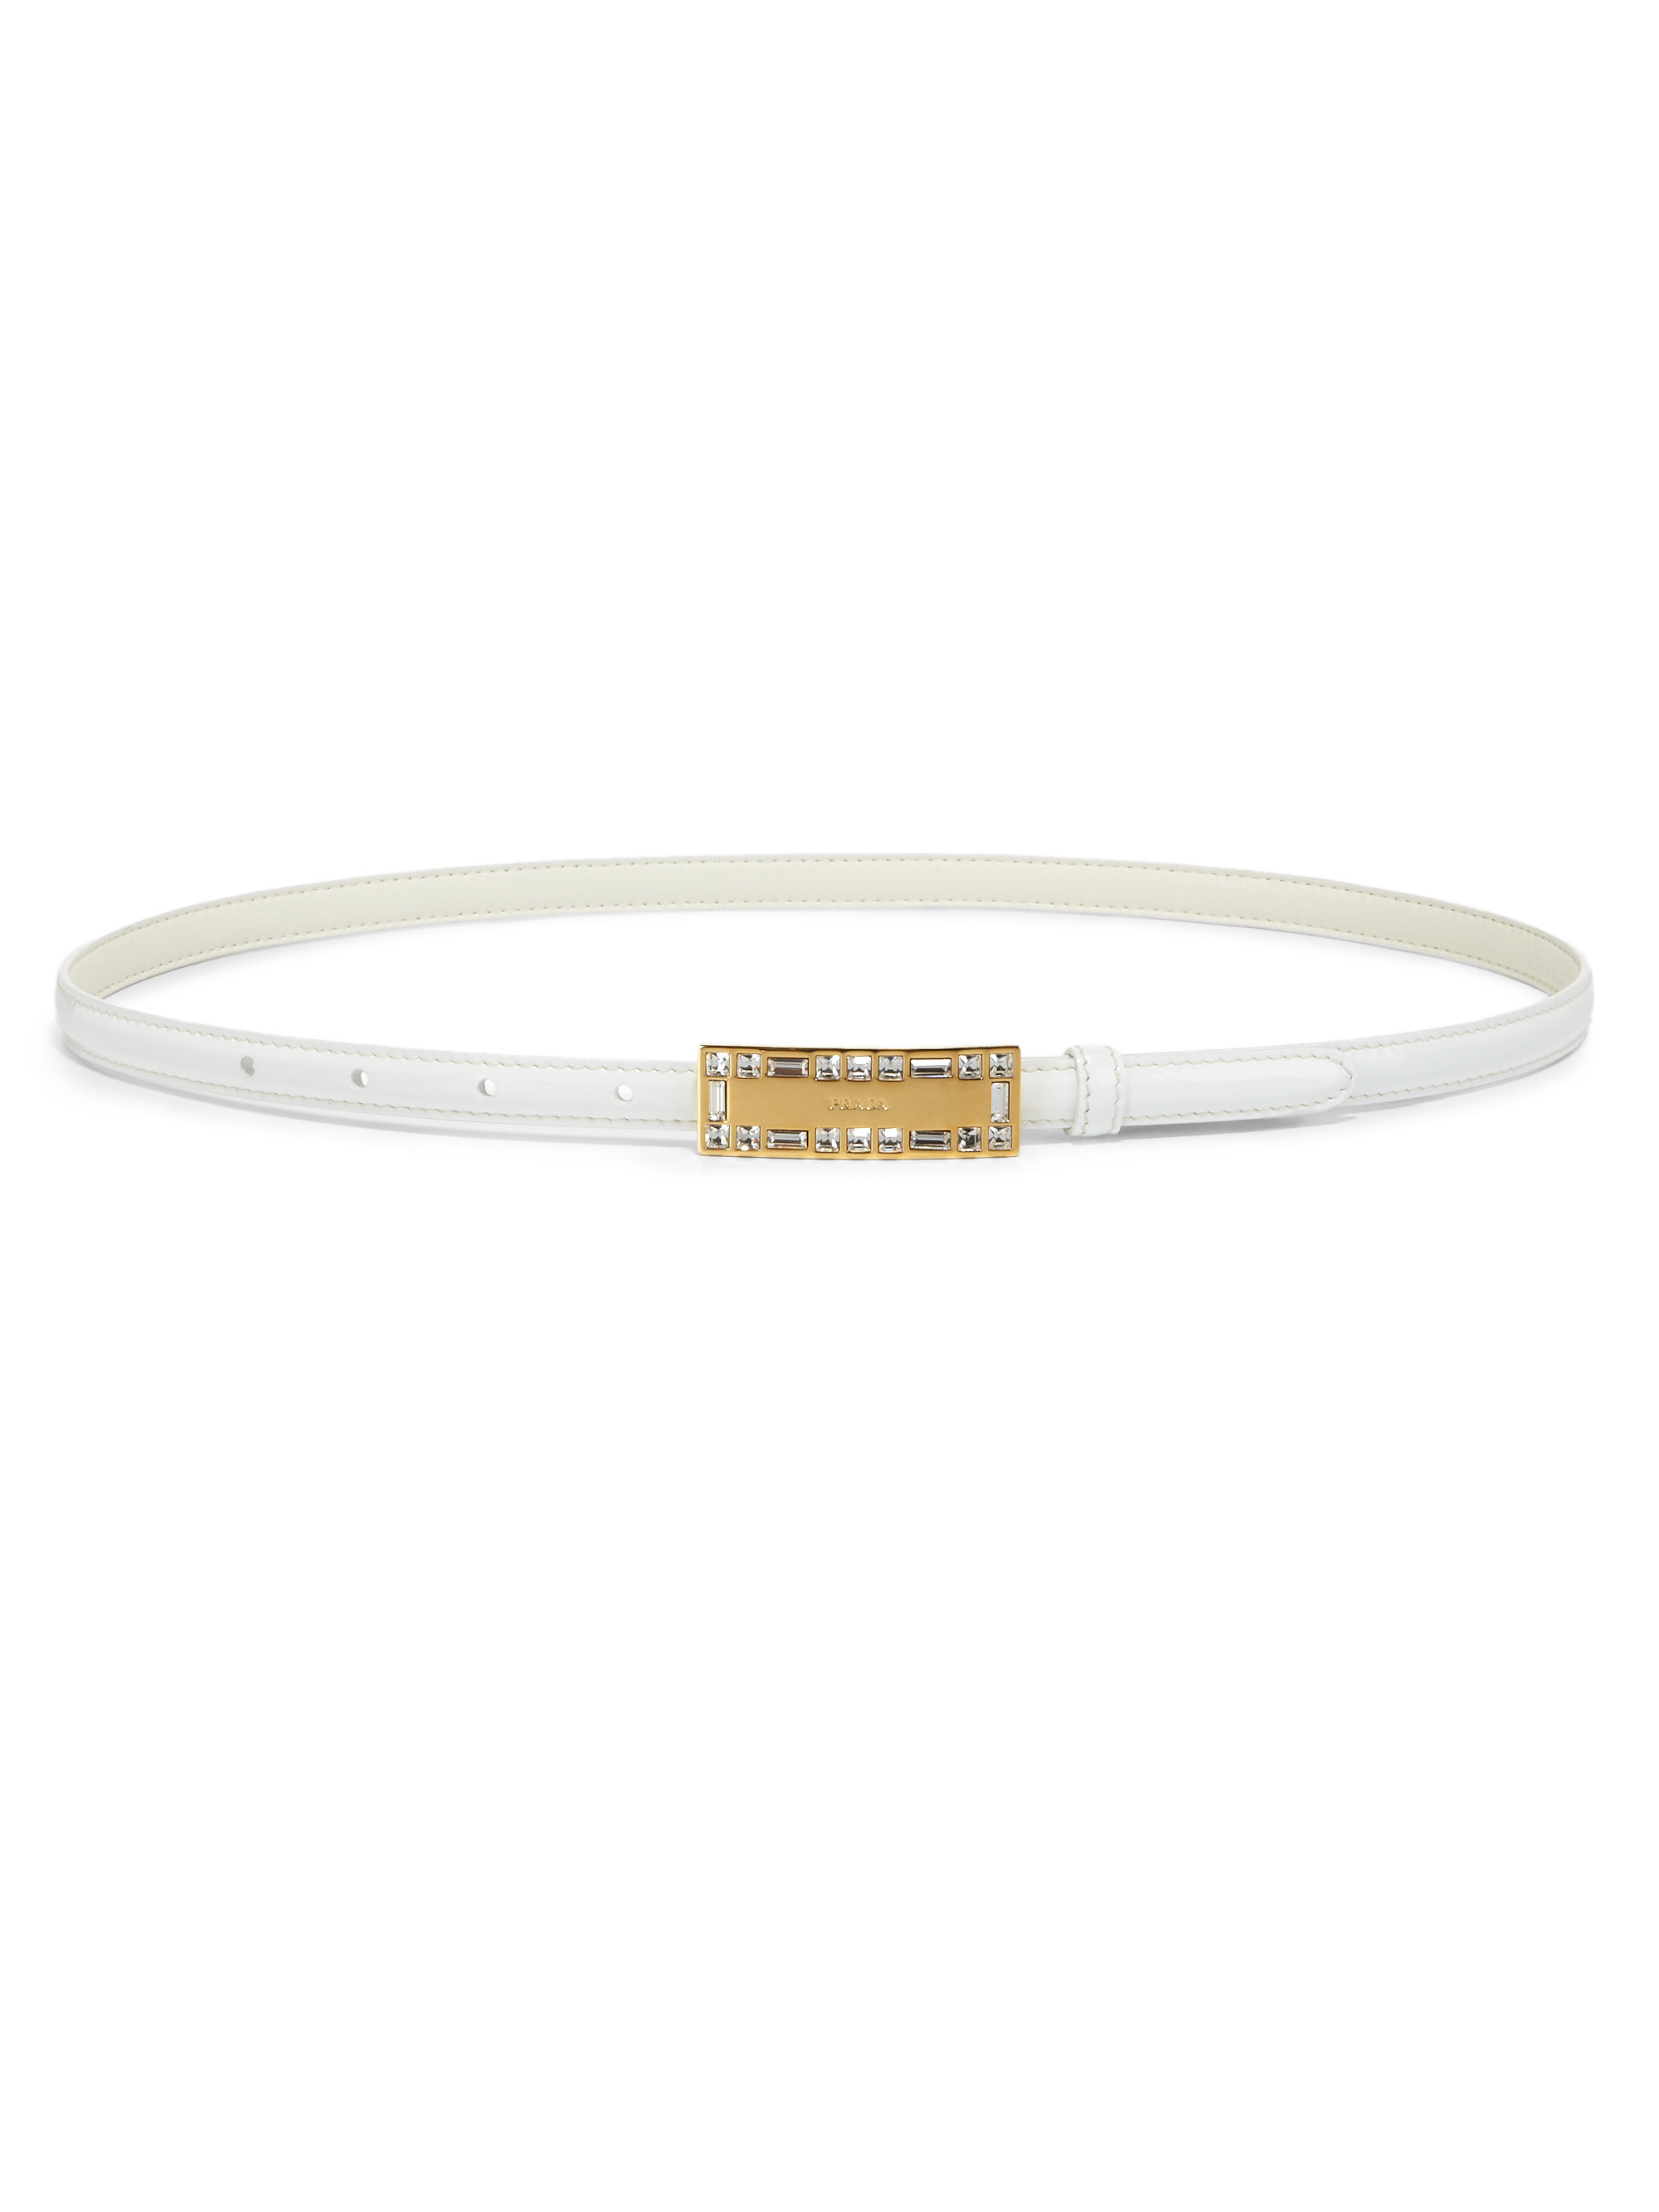 prada patent leather belt in white lyst